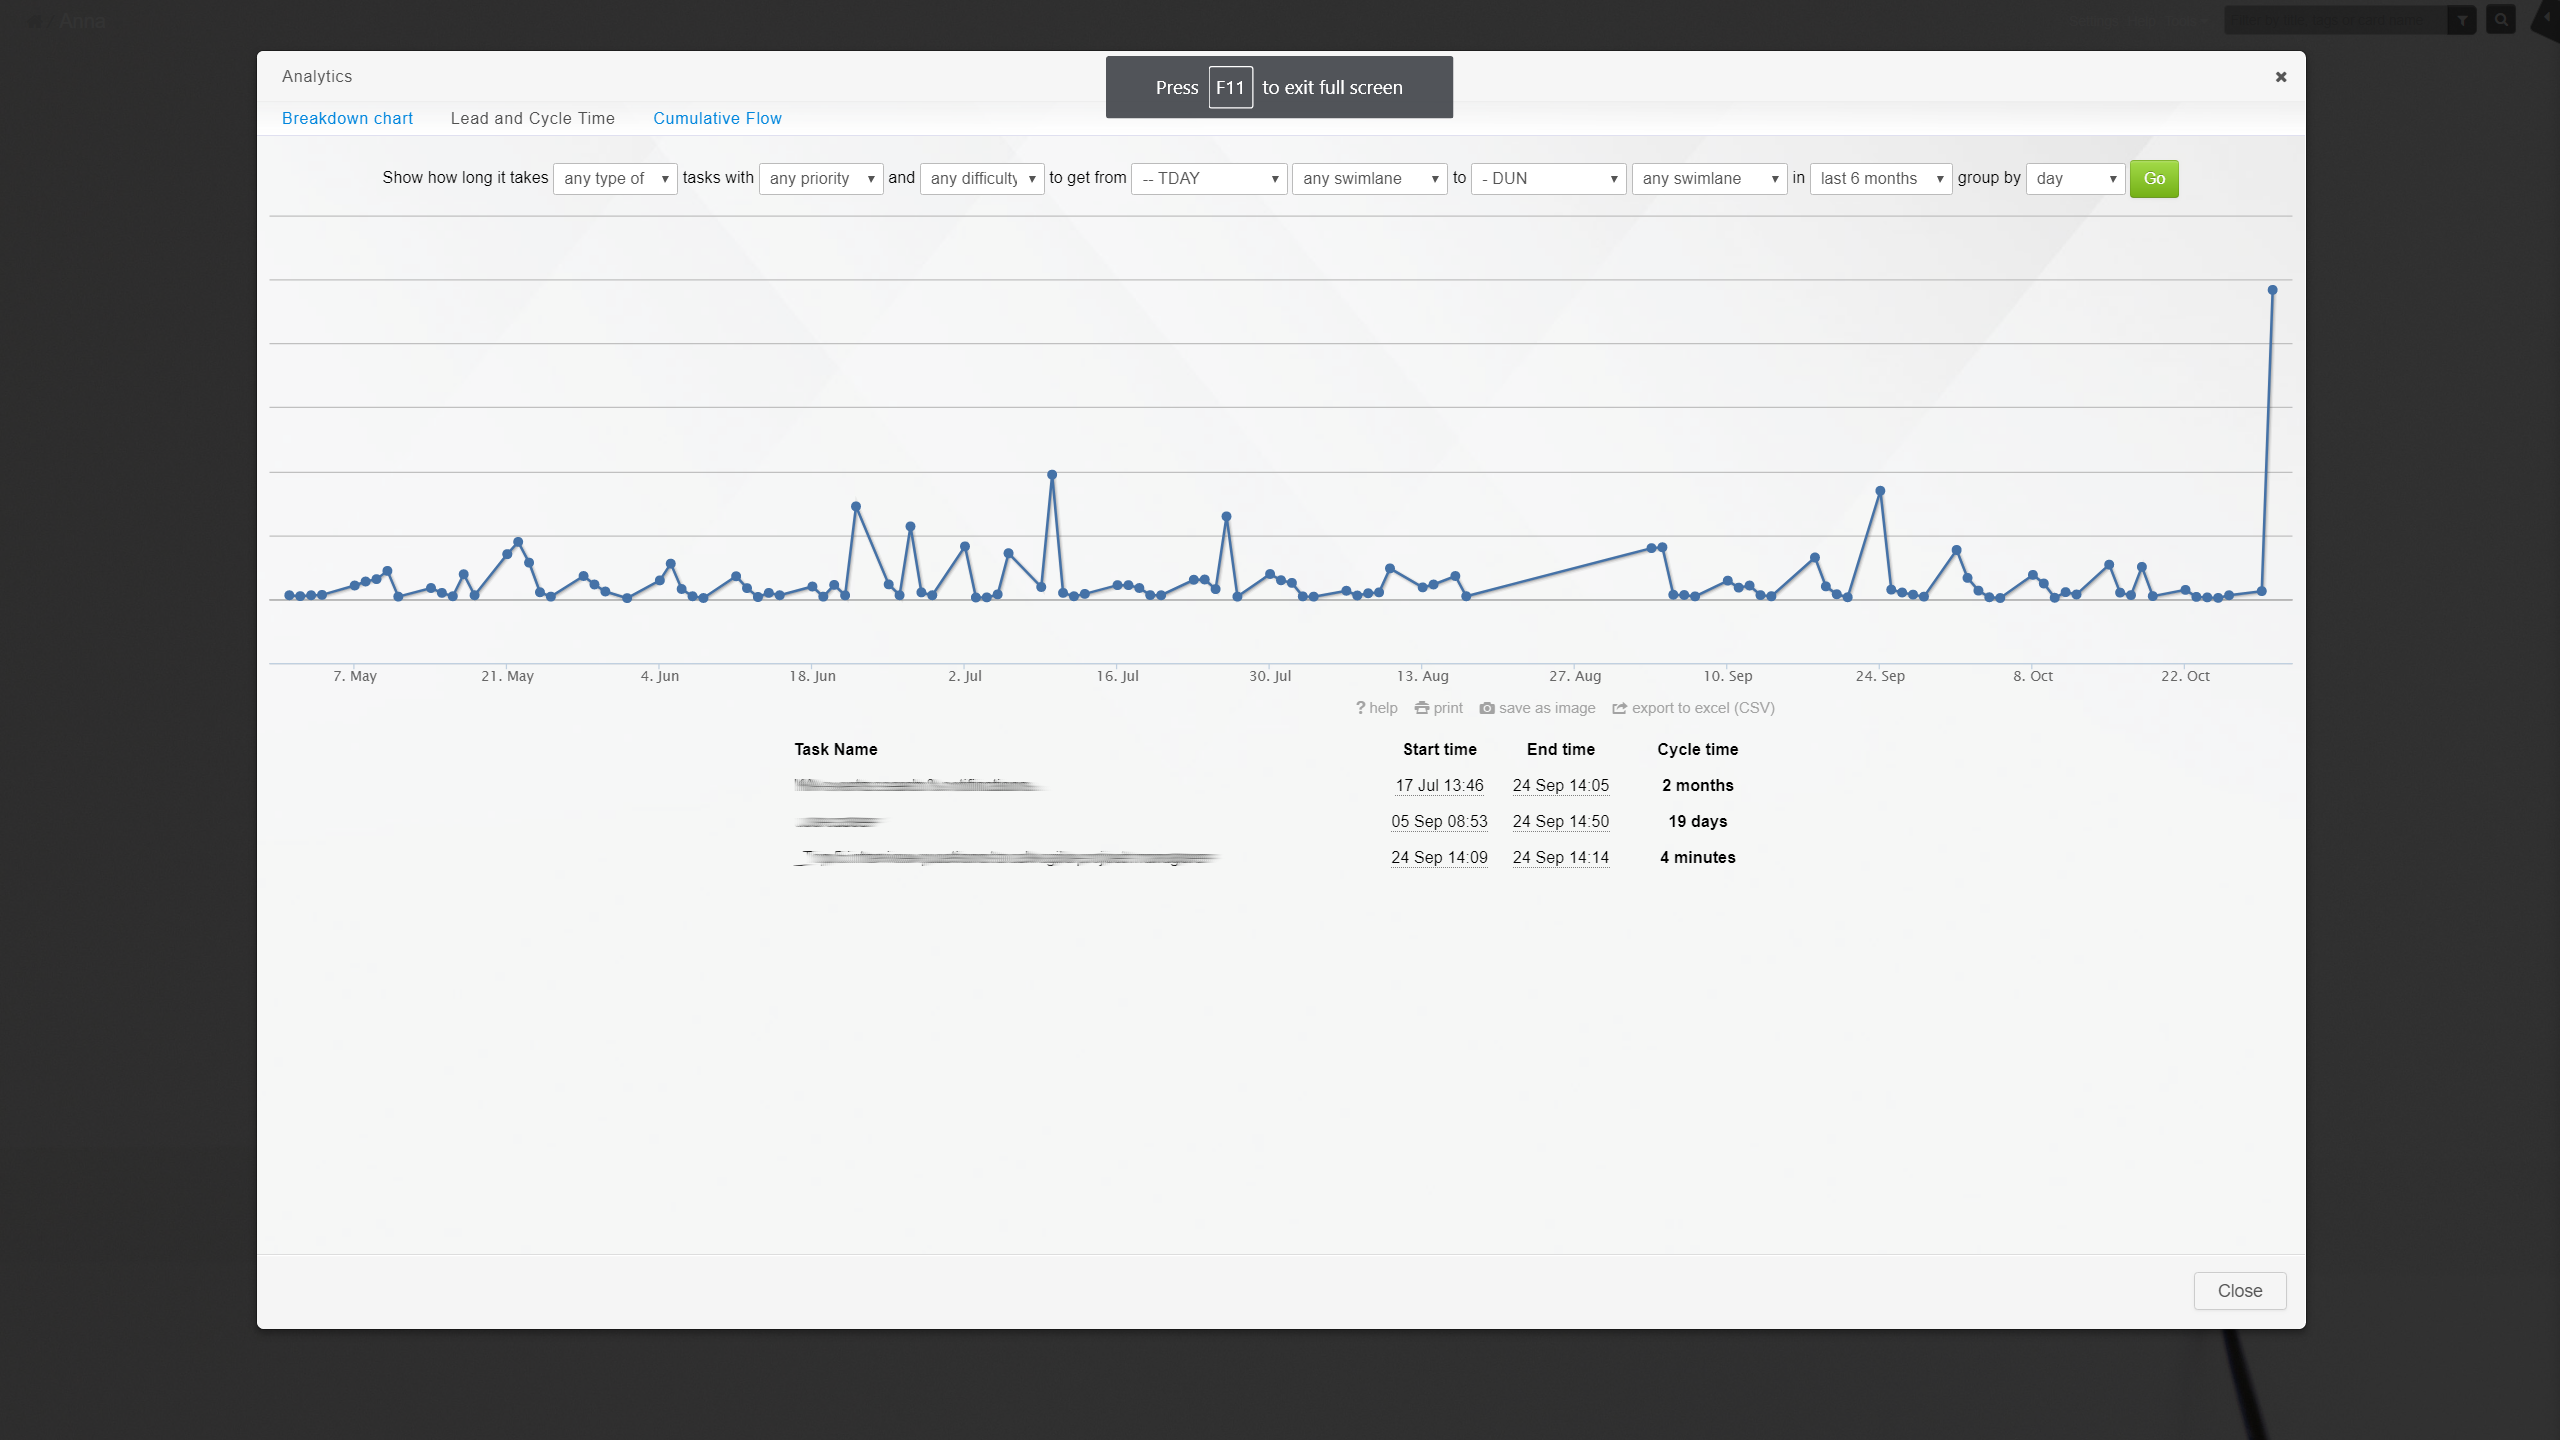 There are automatically generated metrics, analysing the process flow for you: Breakdown Charts, Lead & Cycle Time Diagram (visible here), Cumulative Flow Chart, Time Report and a Changelog.